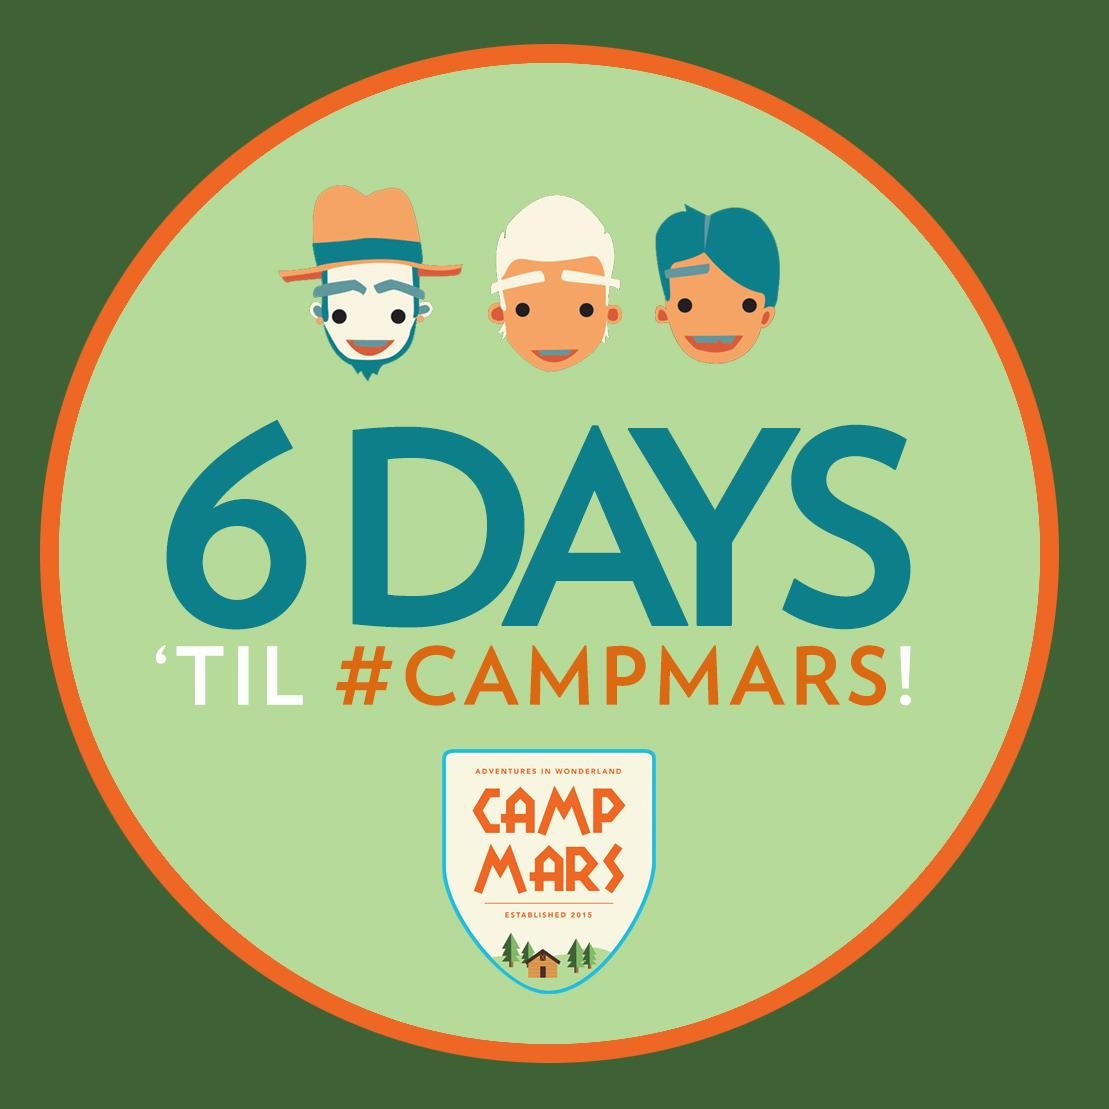 RT @30SECONDSTOMARS: SIX DAYS UNTIL #CampMars + night TWO in Malibu! Can't stay all weekend? Spend the day. → http://t.co/oPusNNFAFZ http:/…